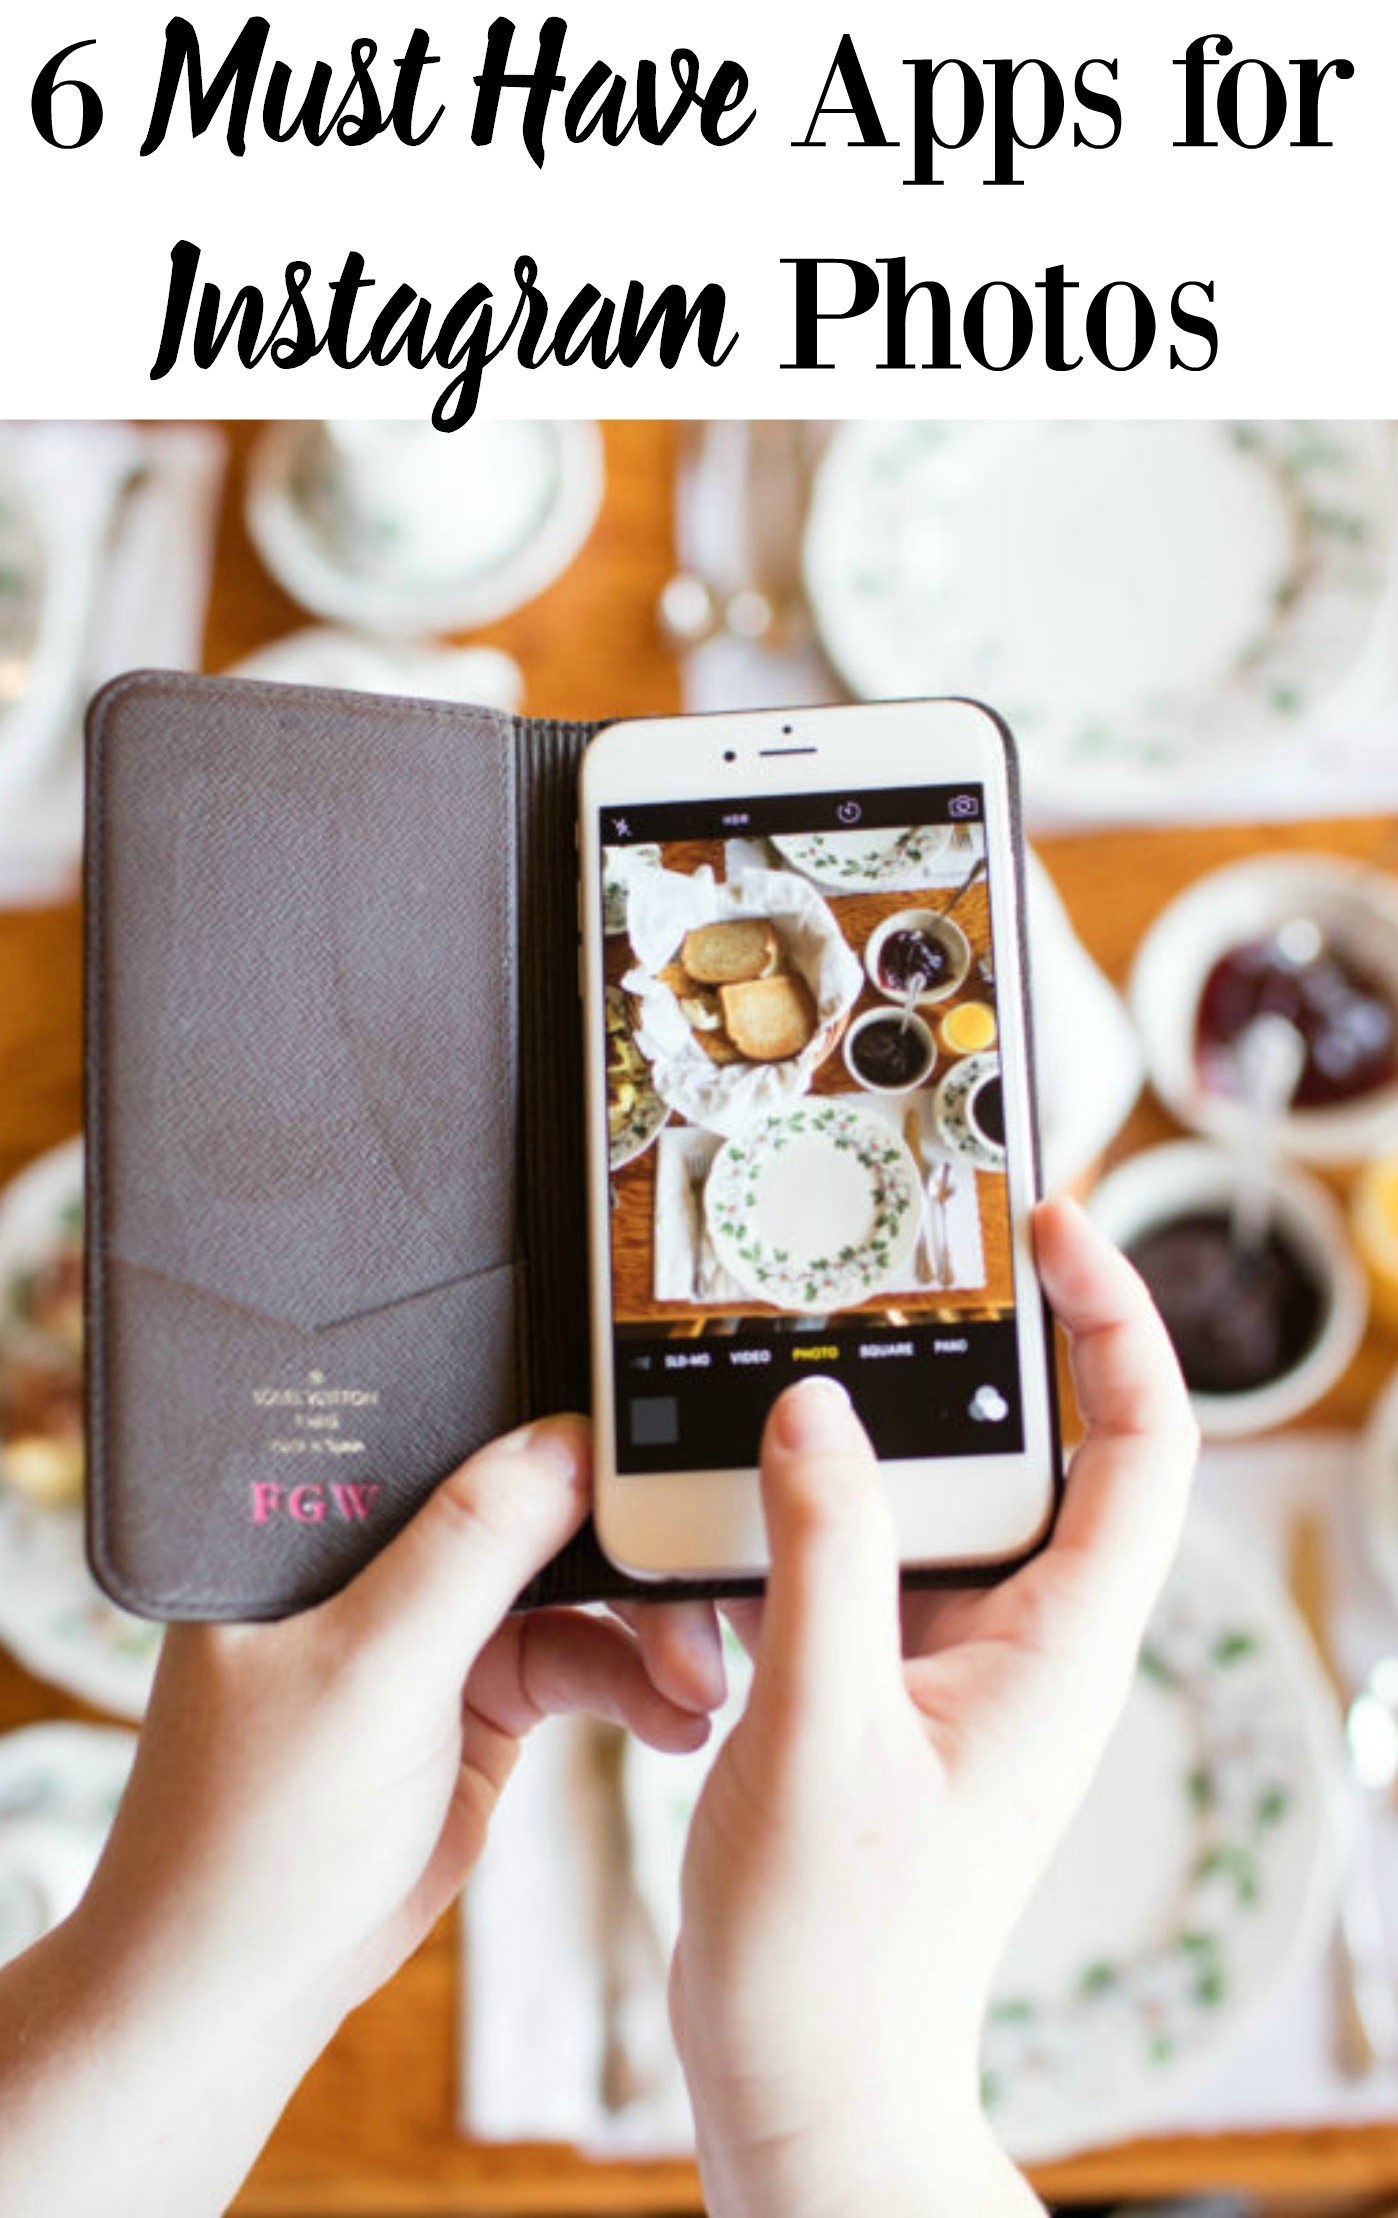 6 must-have apps for iPhones photos and Instagram. This is the best tutorial for iPhone picture apps. So easy to follow!